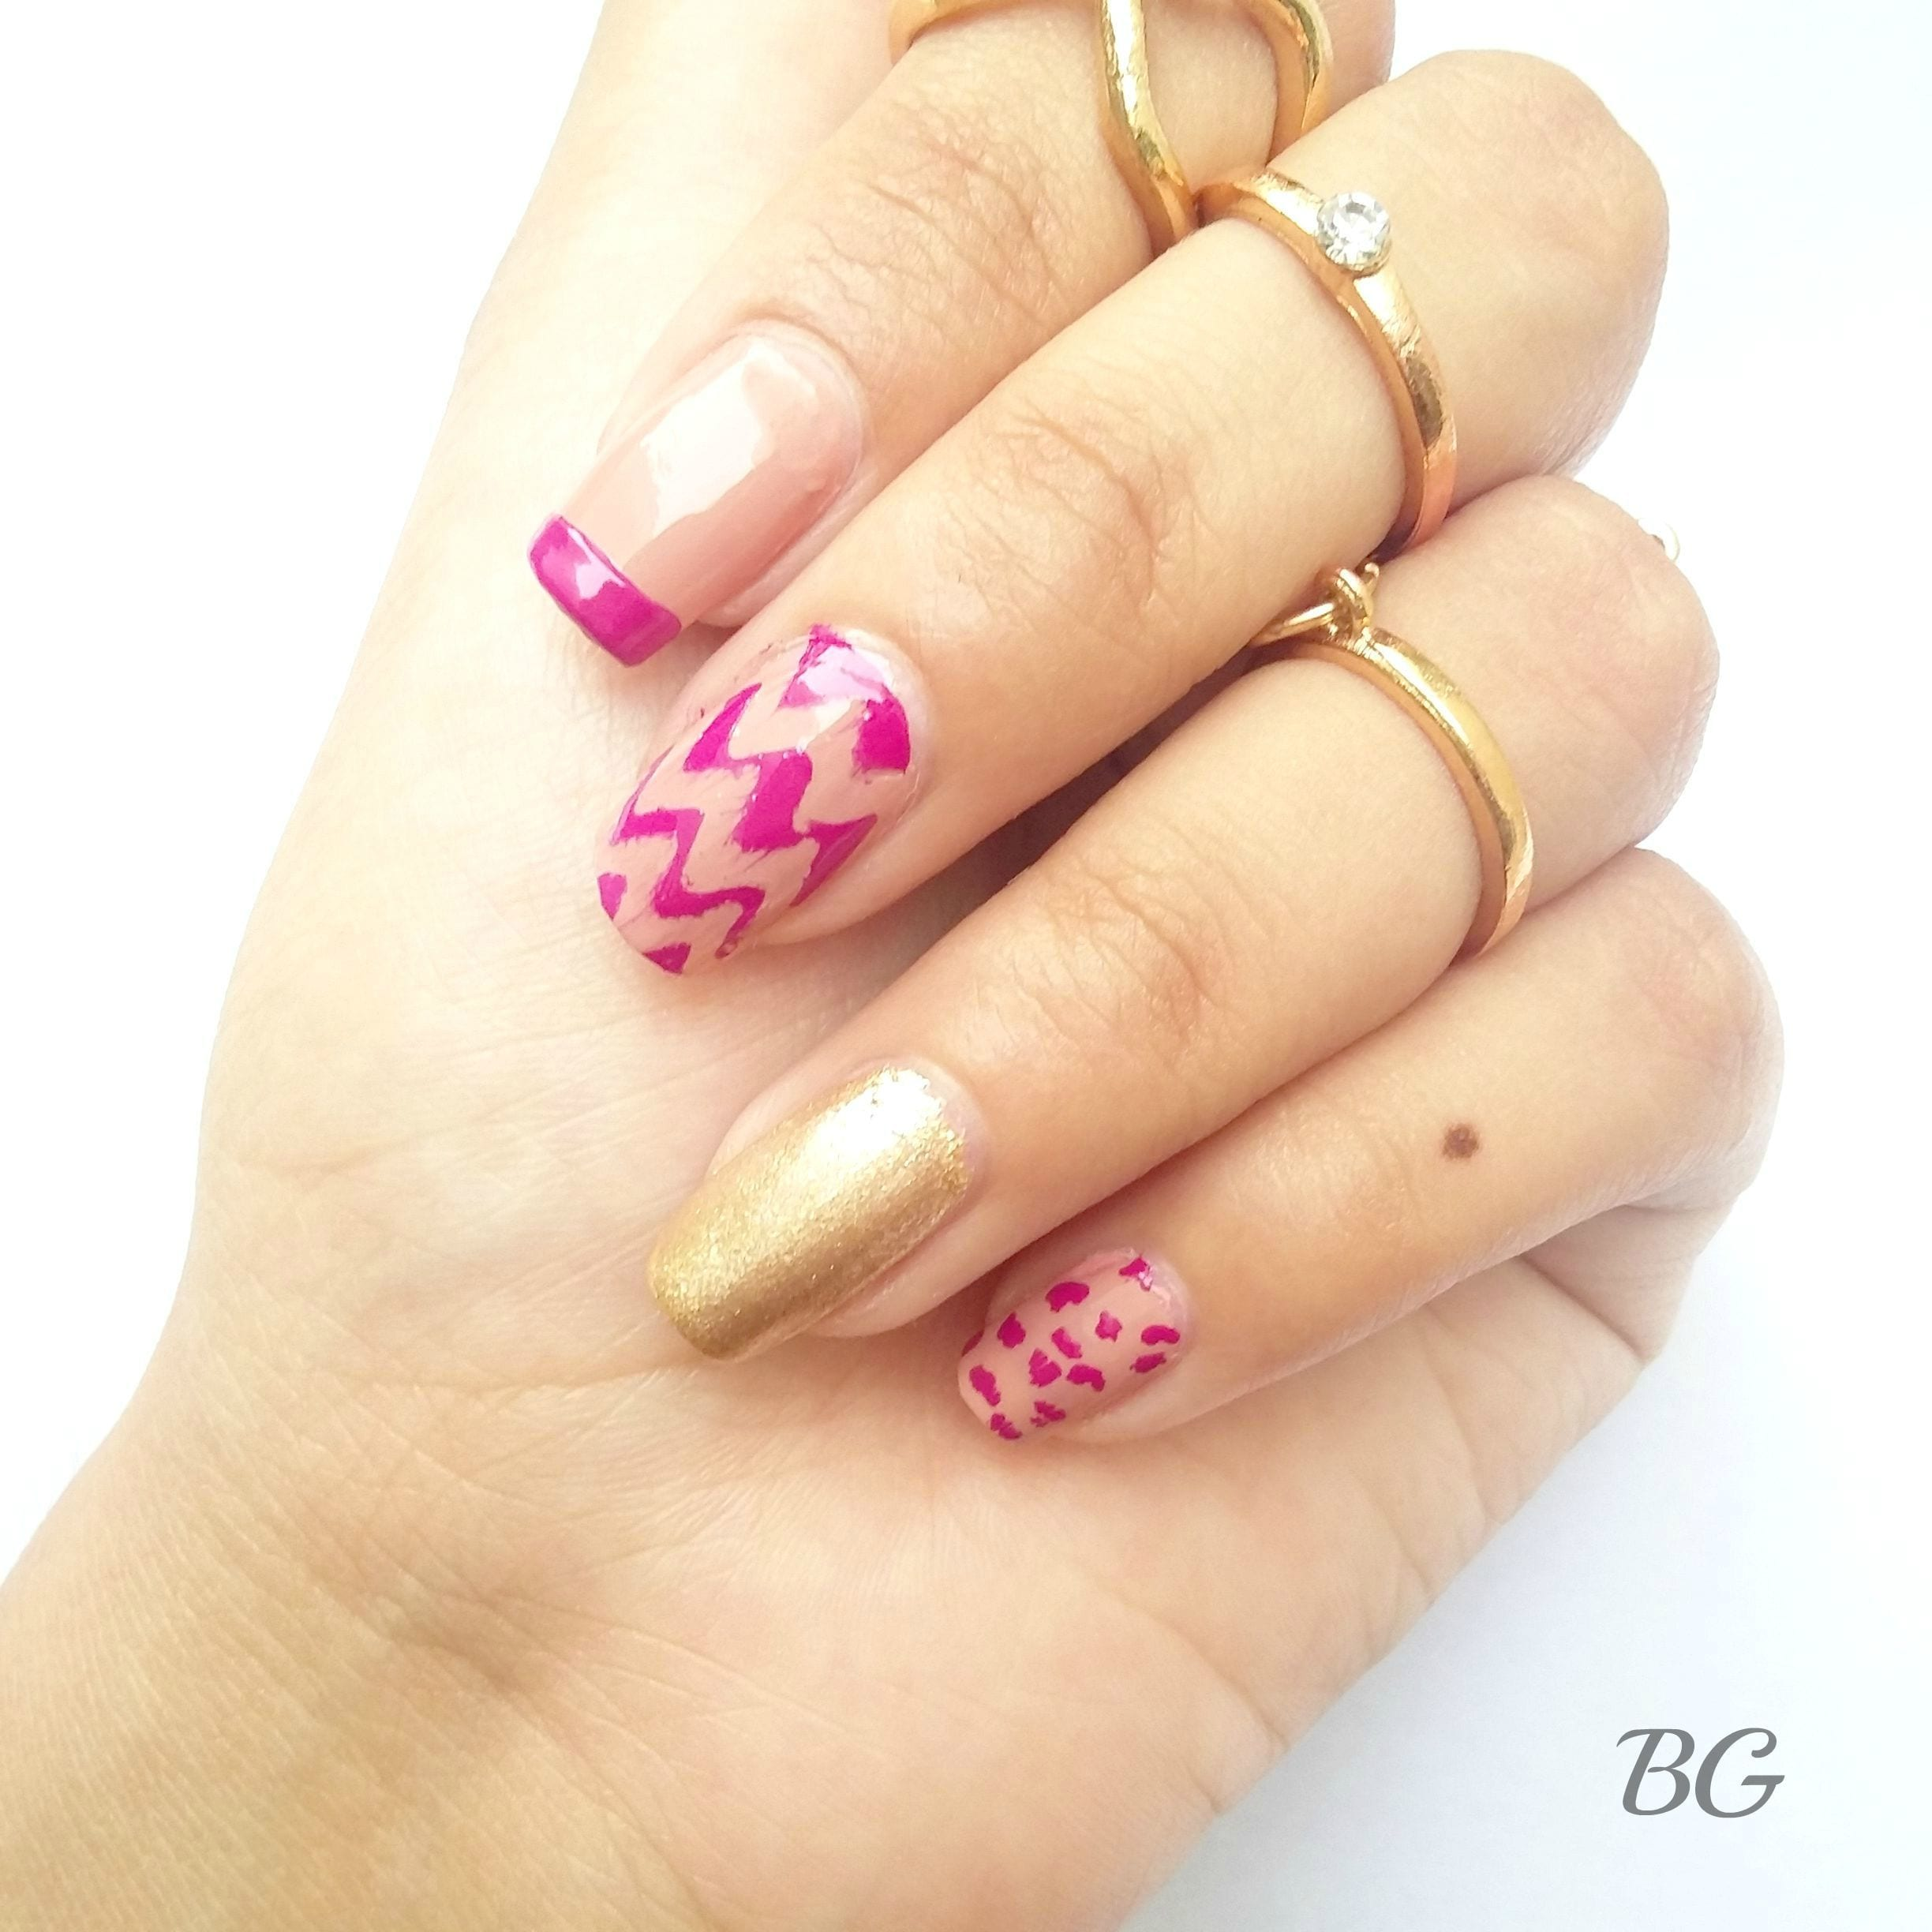 Nail-Art-Tutorial-Gold-Chevron-5 DIY Gold Chevron Nail Design-Step By Step Nail Art Tutorial